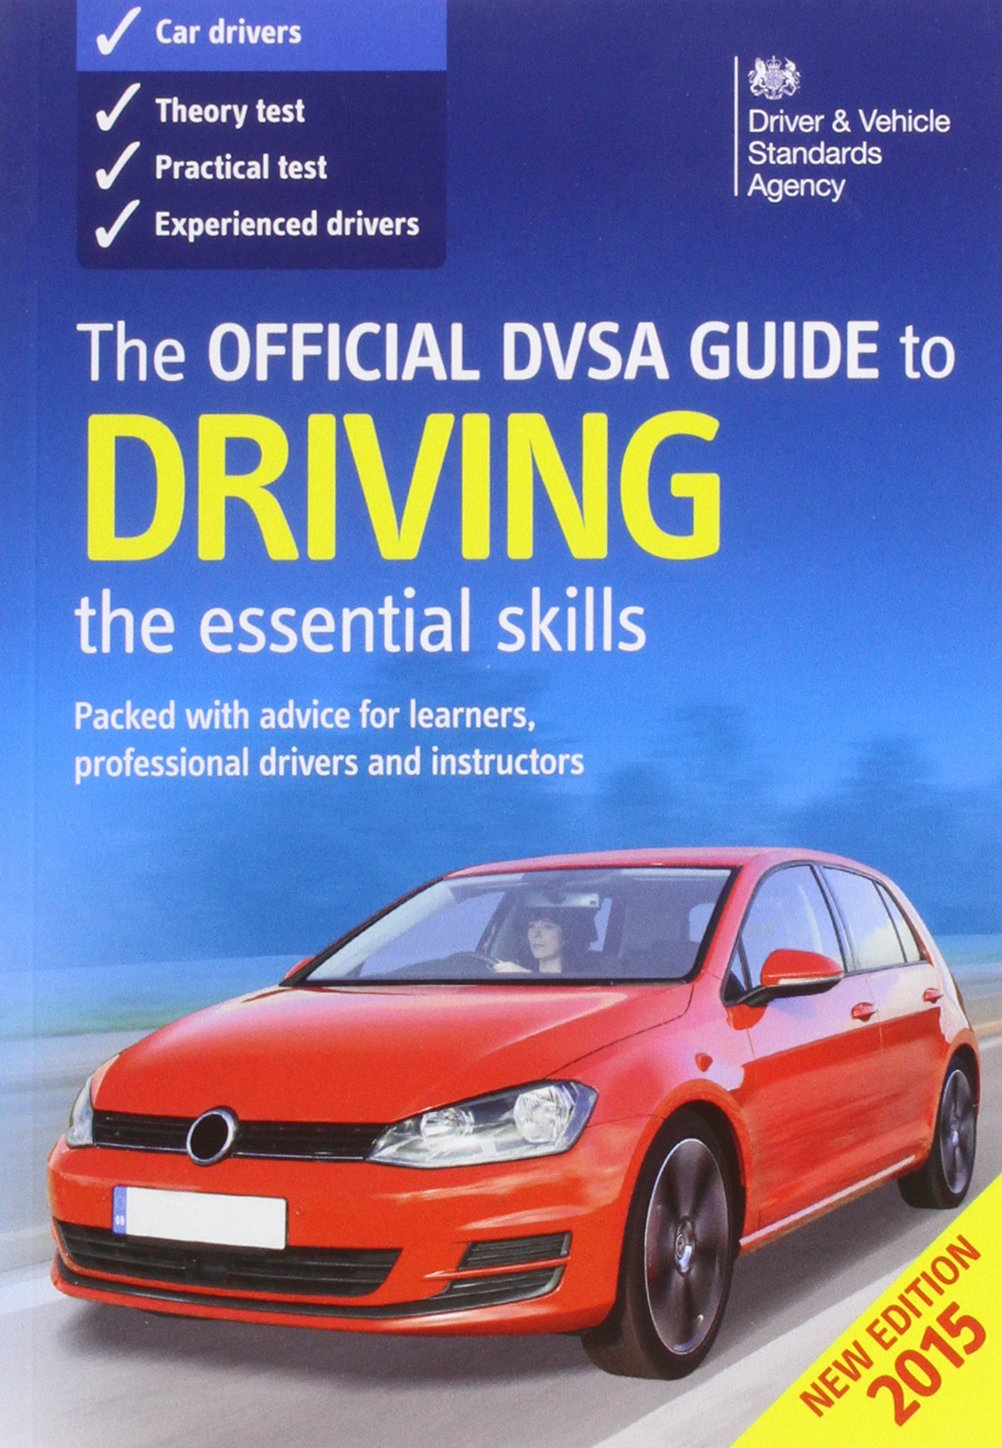 official dsa guide various owner manual guide u2022 rh justk co the official dsa guide to riding the essential skills pdf free Digital Subtraction Angiography